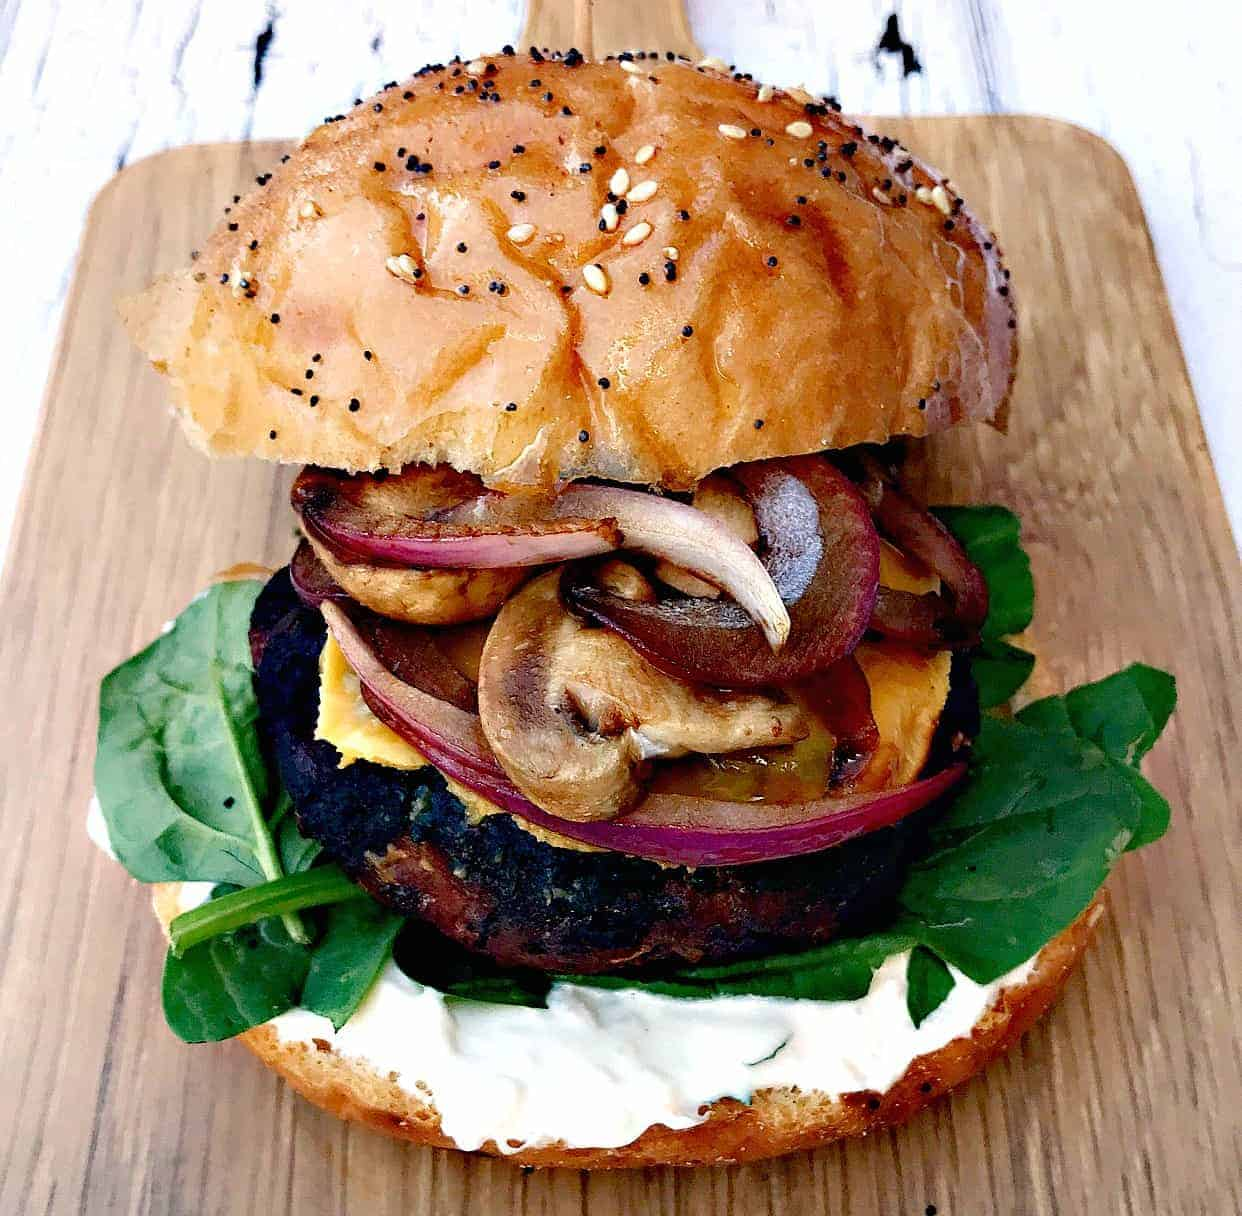 Truffle Oil Mushroom Onion Burger on a cutting board